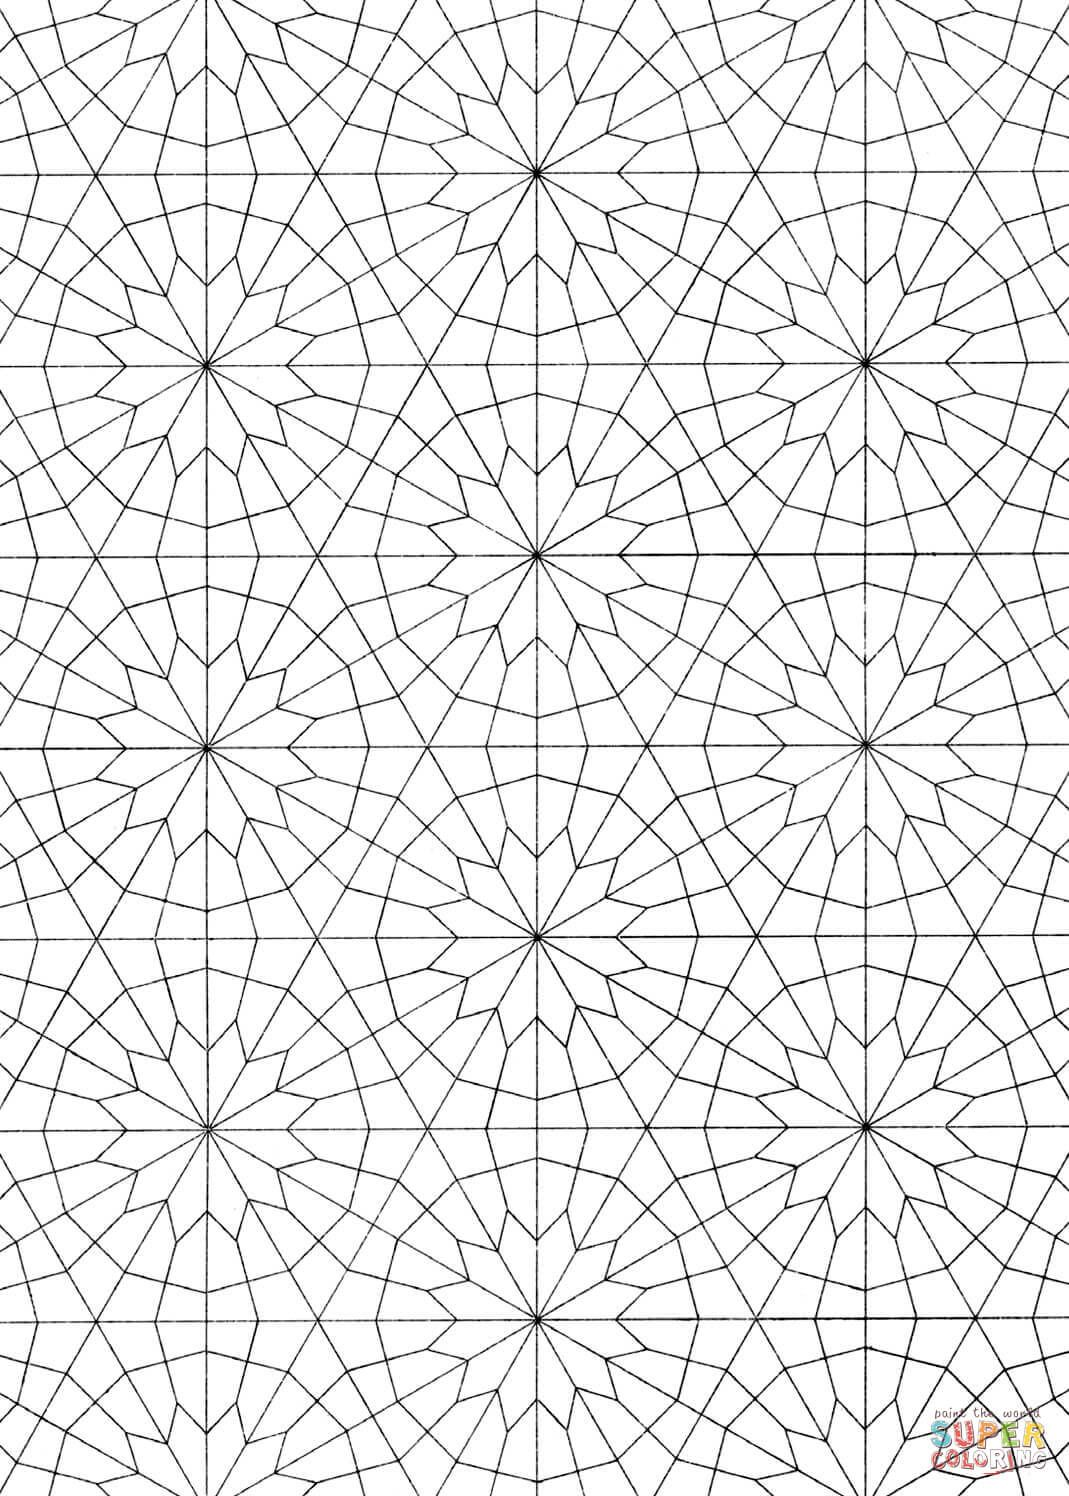 Islamic Pattern Coloring Page From Pattern Category Select From 29303 Printable Crafts Of Cartoons Nature Anim Arabic Pattern Islamic Pattern Print Patterns